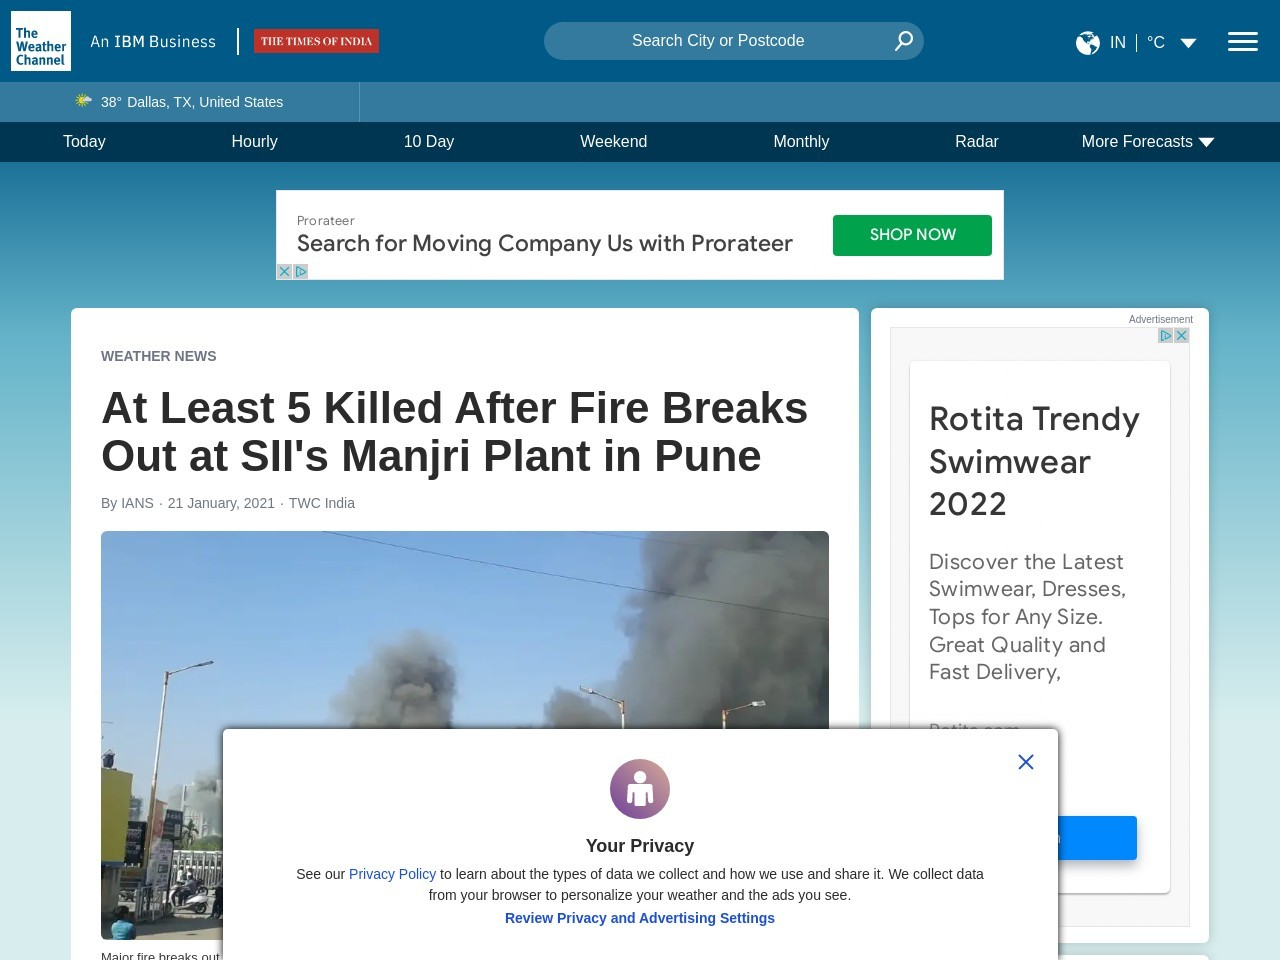 At Least 5 Killed After Fire Breaks Out at SII's Manjri Plant in Pune   The Weather Channel - Articles from The Weather Channel   weather.com